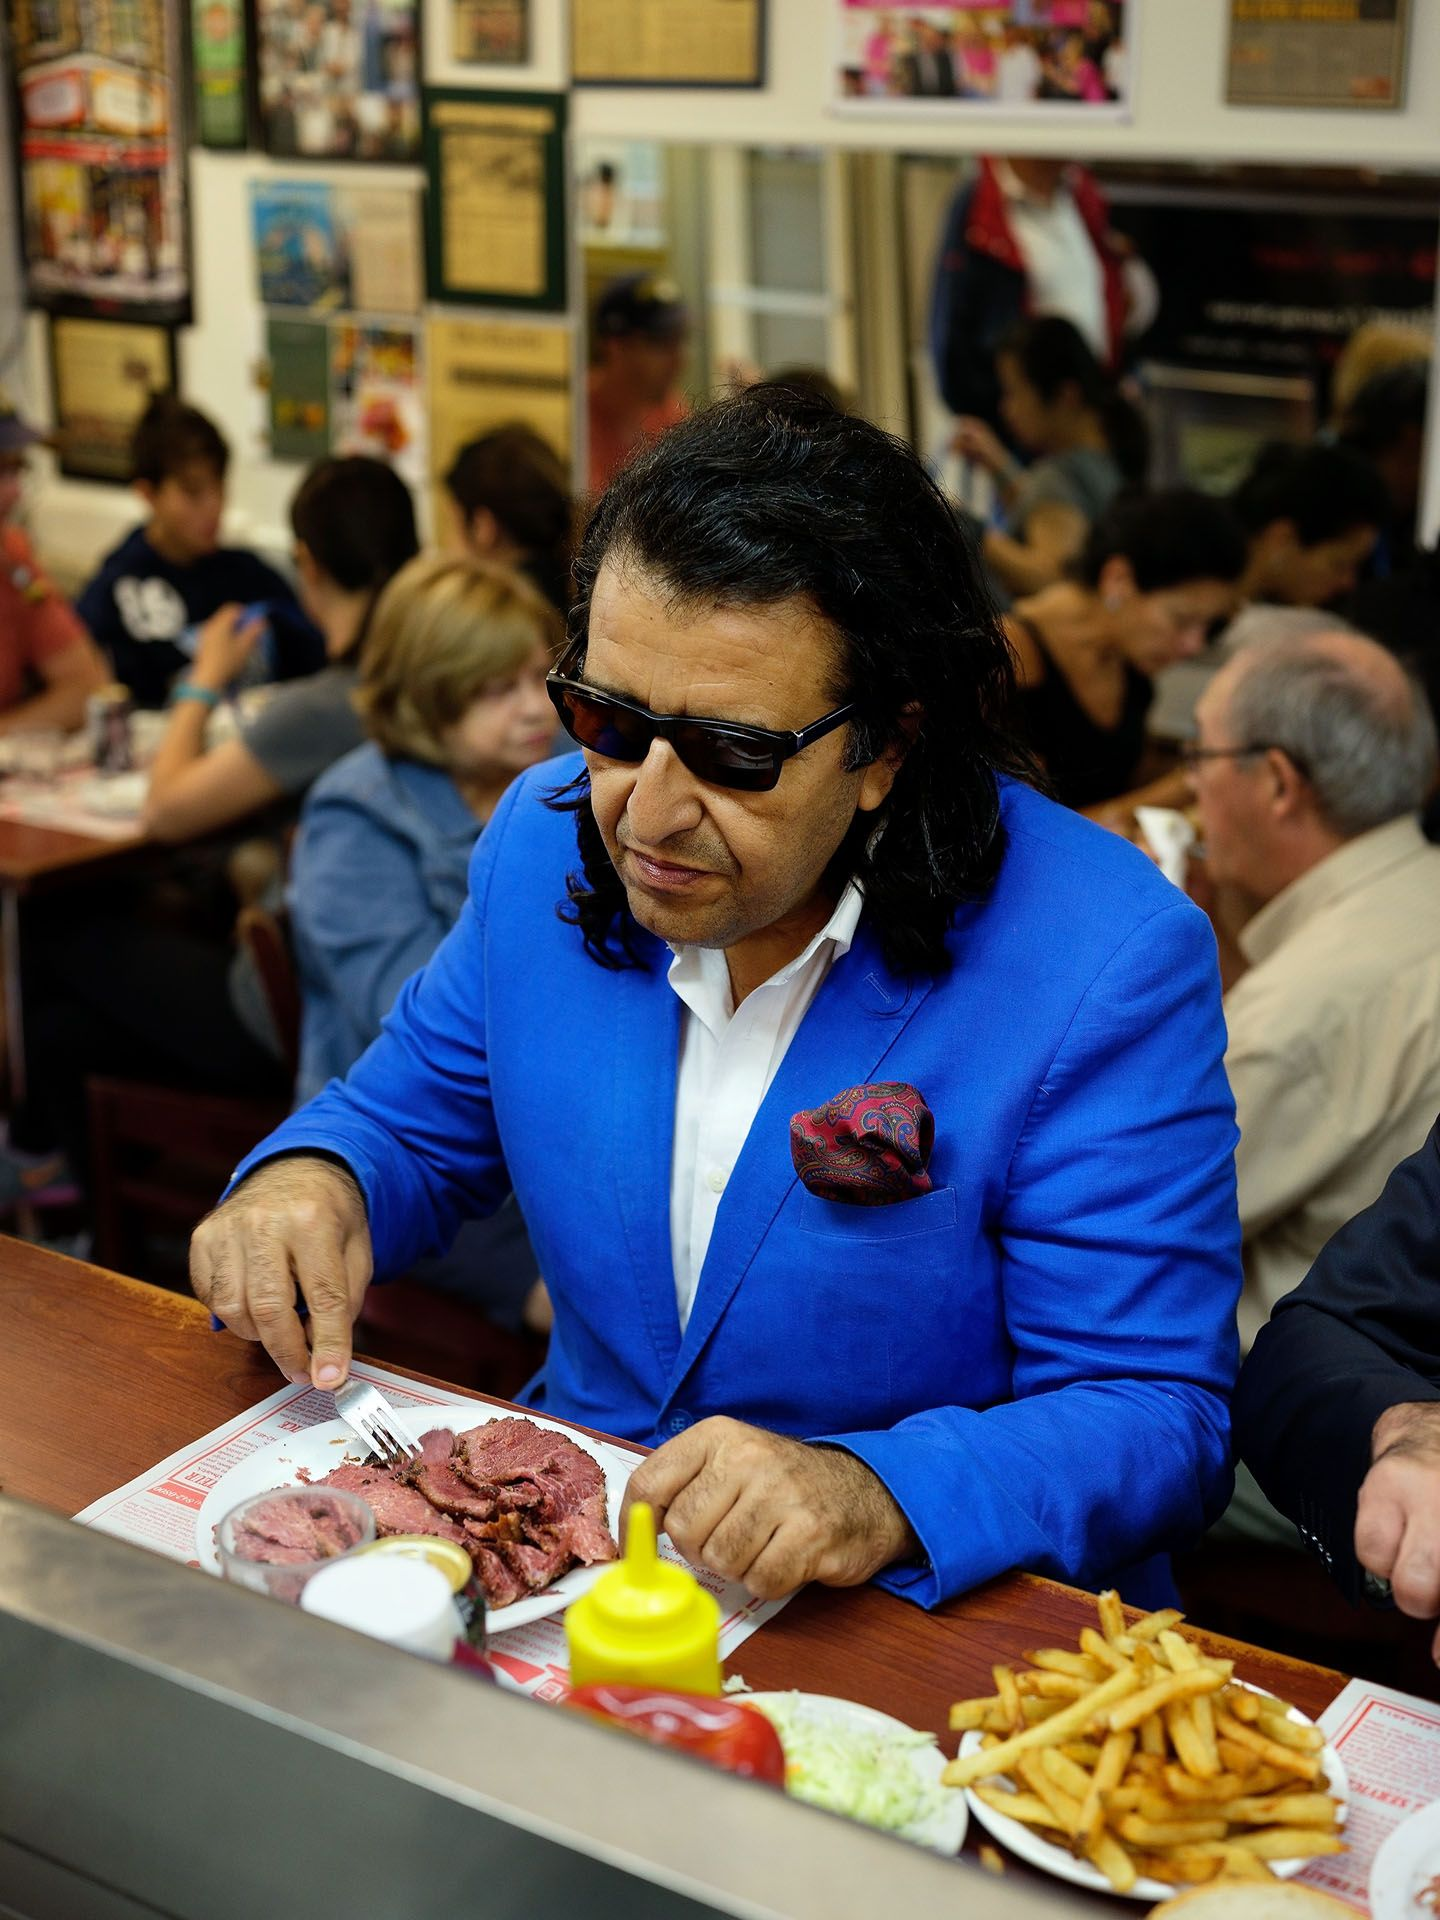 man sitting on counter at the dinner eating beef carpaccio with fries wearing bright blue tuxedo and sunglasses photographed by Guillaume Simoneau as part of Off Duty Montreal series for The Wall Street Journal magazine